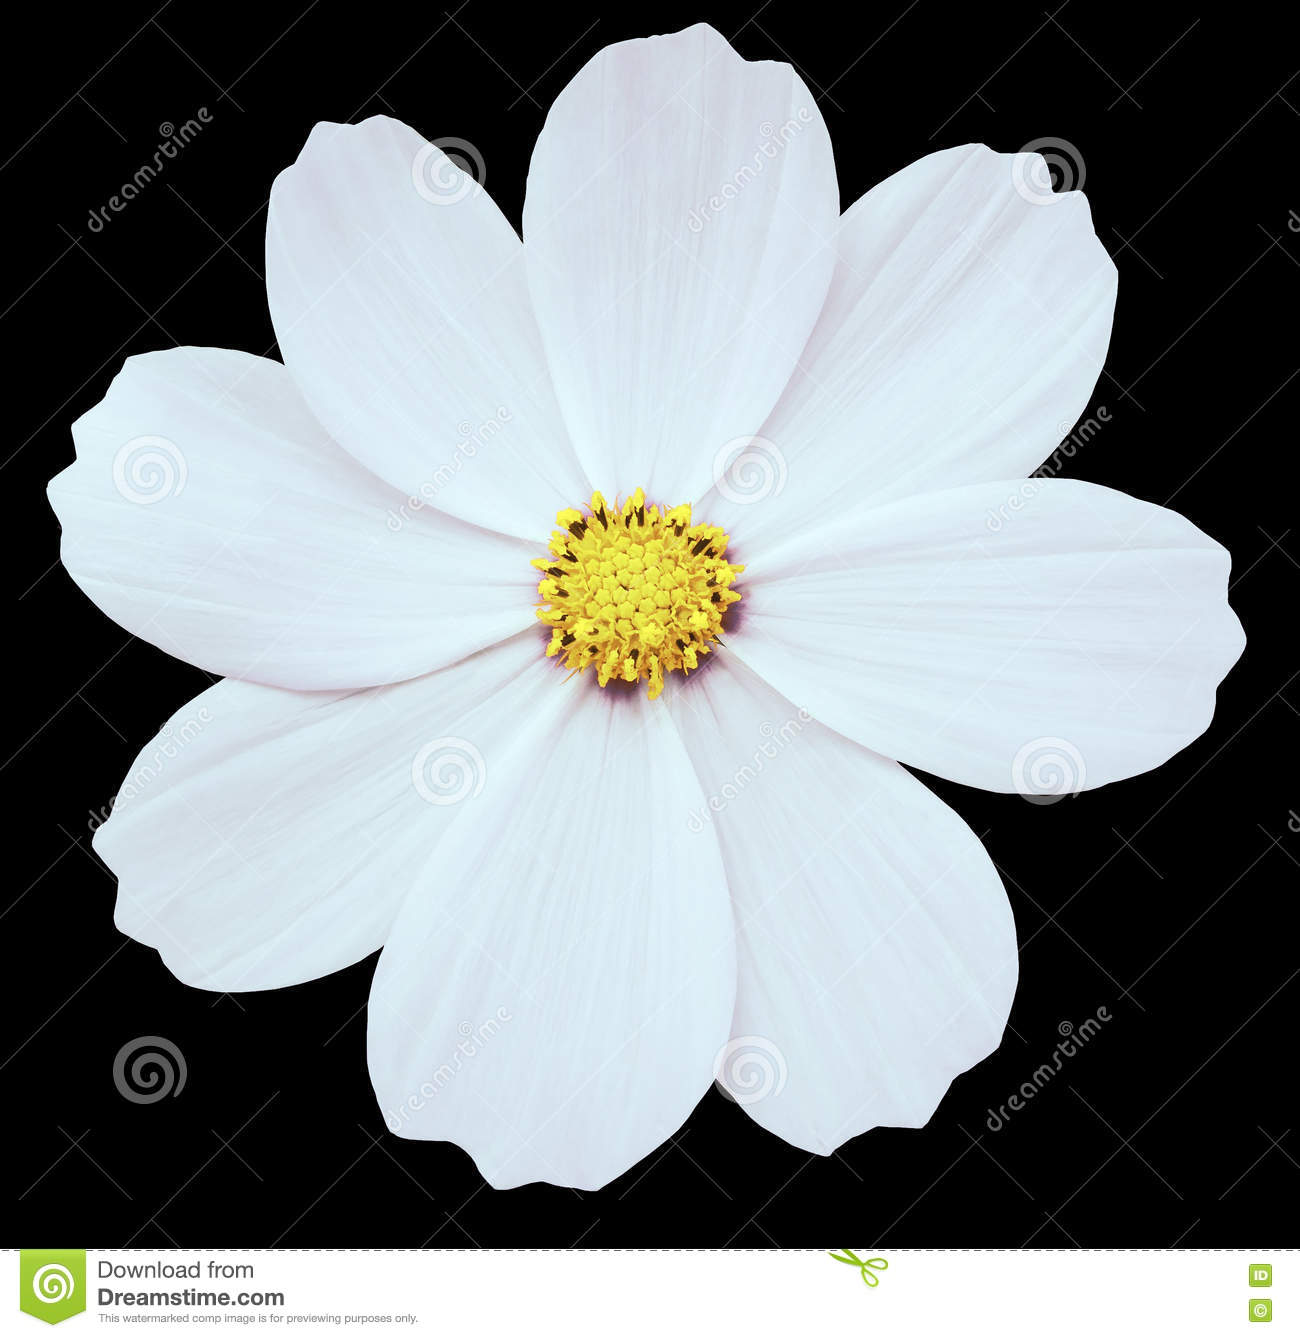 White Flower Primula Black Isolated Background With Clipping Path